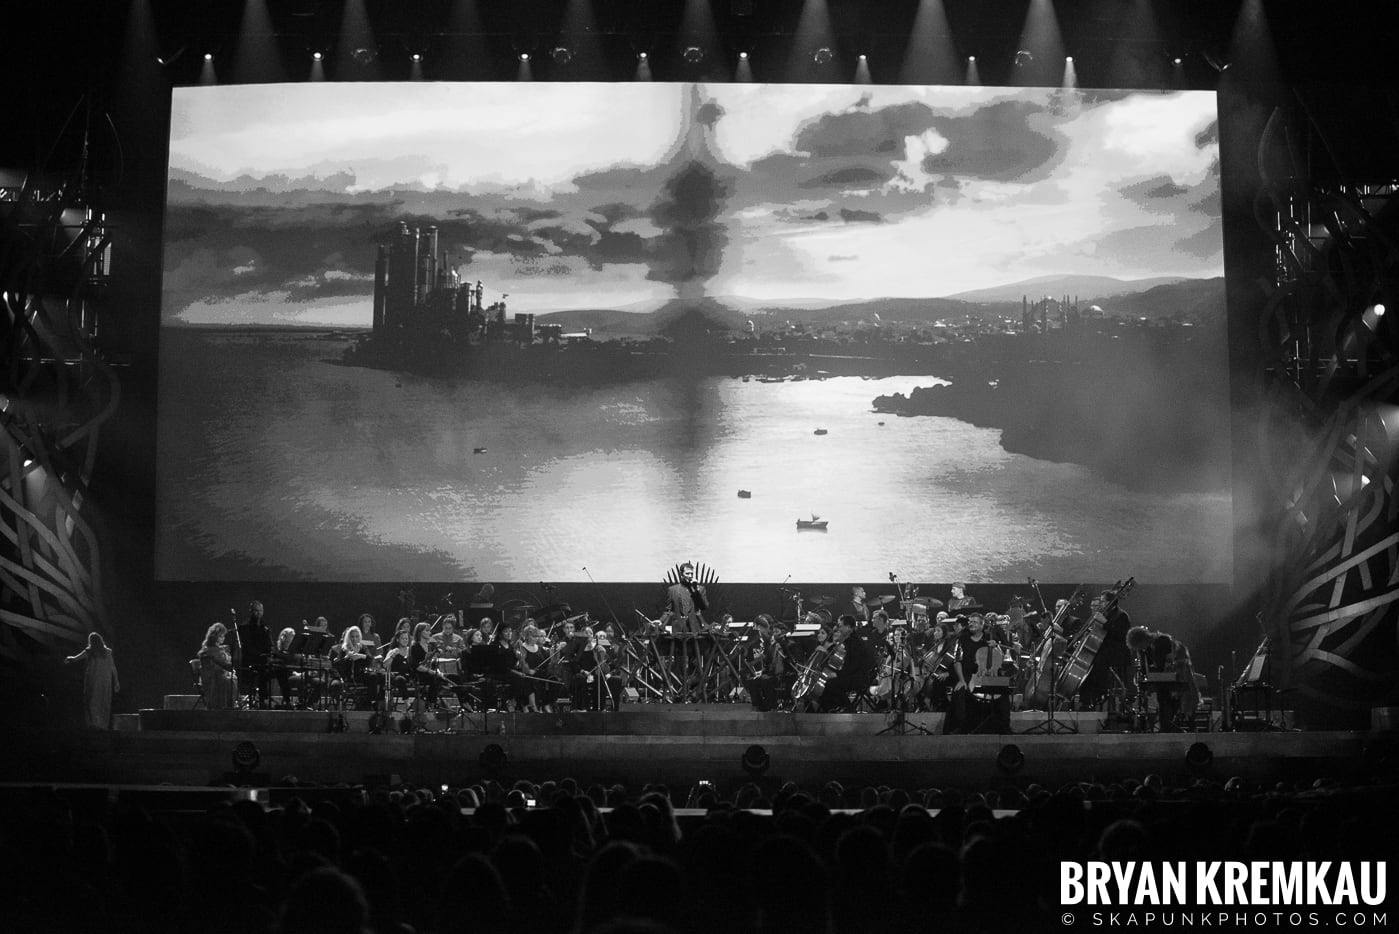 Game of Thrones Live Experience @ Prudential Center, Newark, NJ - 9.26.18 (27)